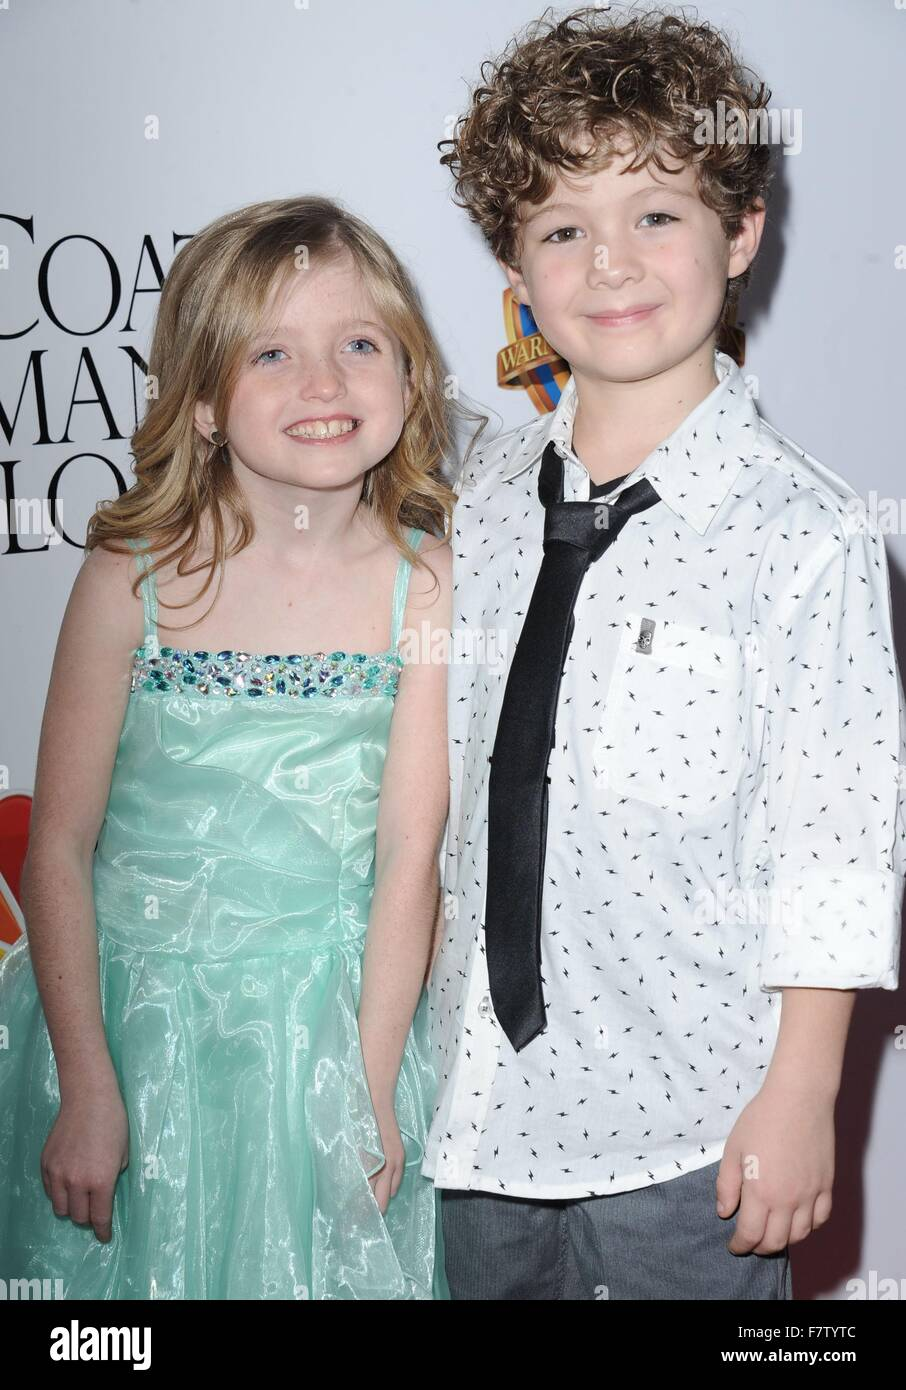 Farrah Mackenzie, Blane Crockarell at arrivals for Dolly Parton's COAT OF MANY COLORS Premiere, The Egyptian - Stock Image